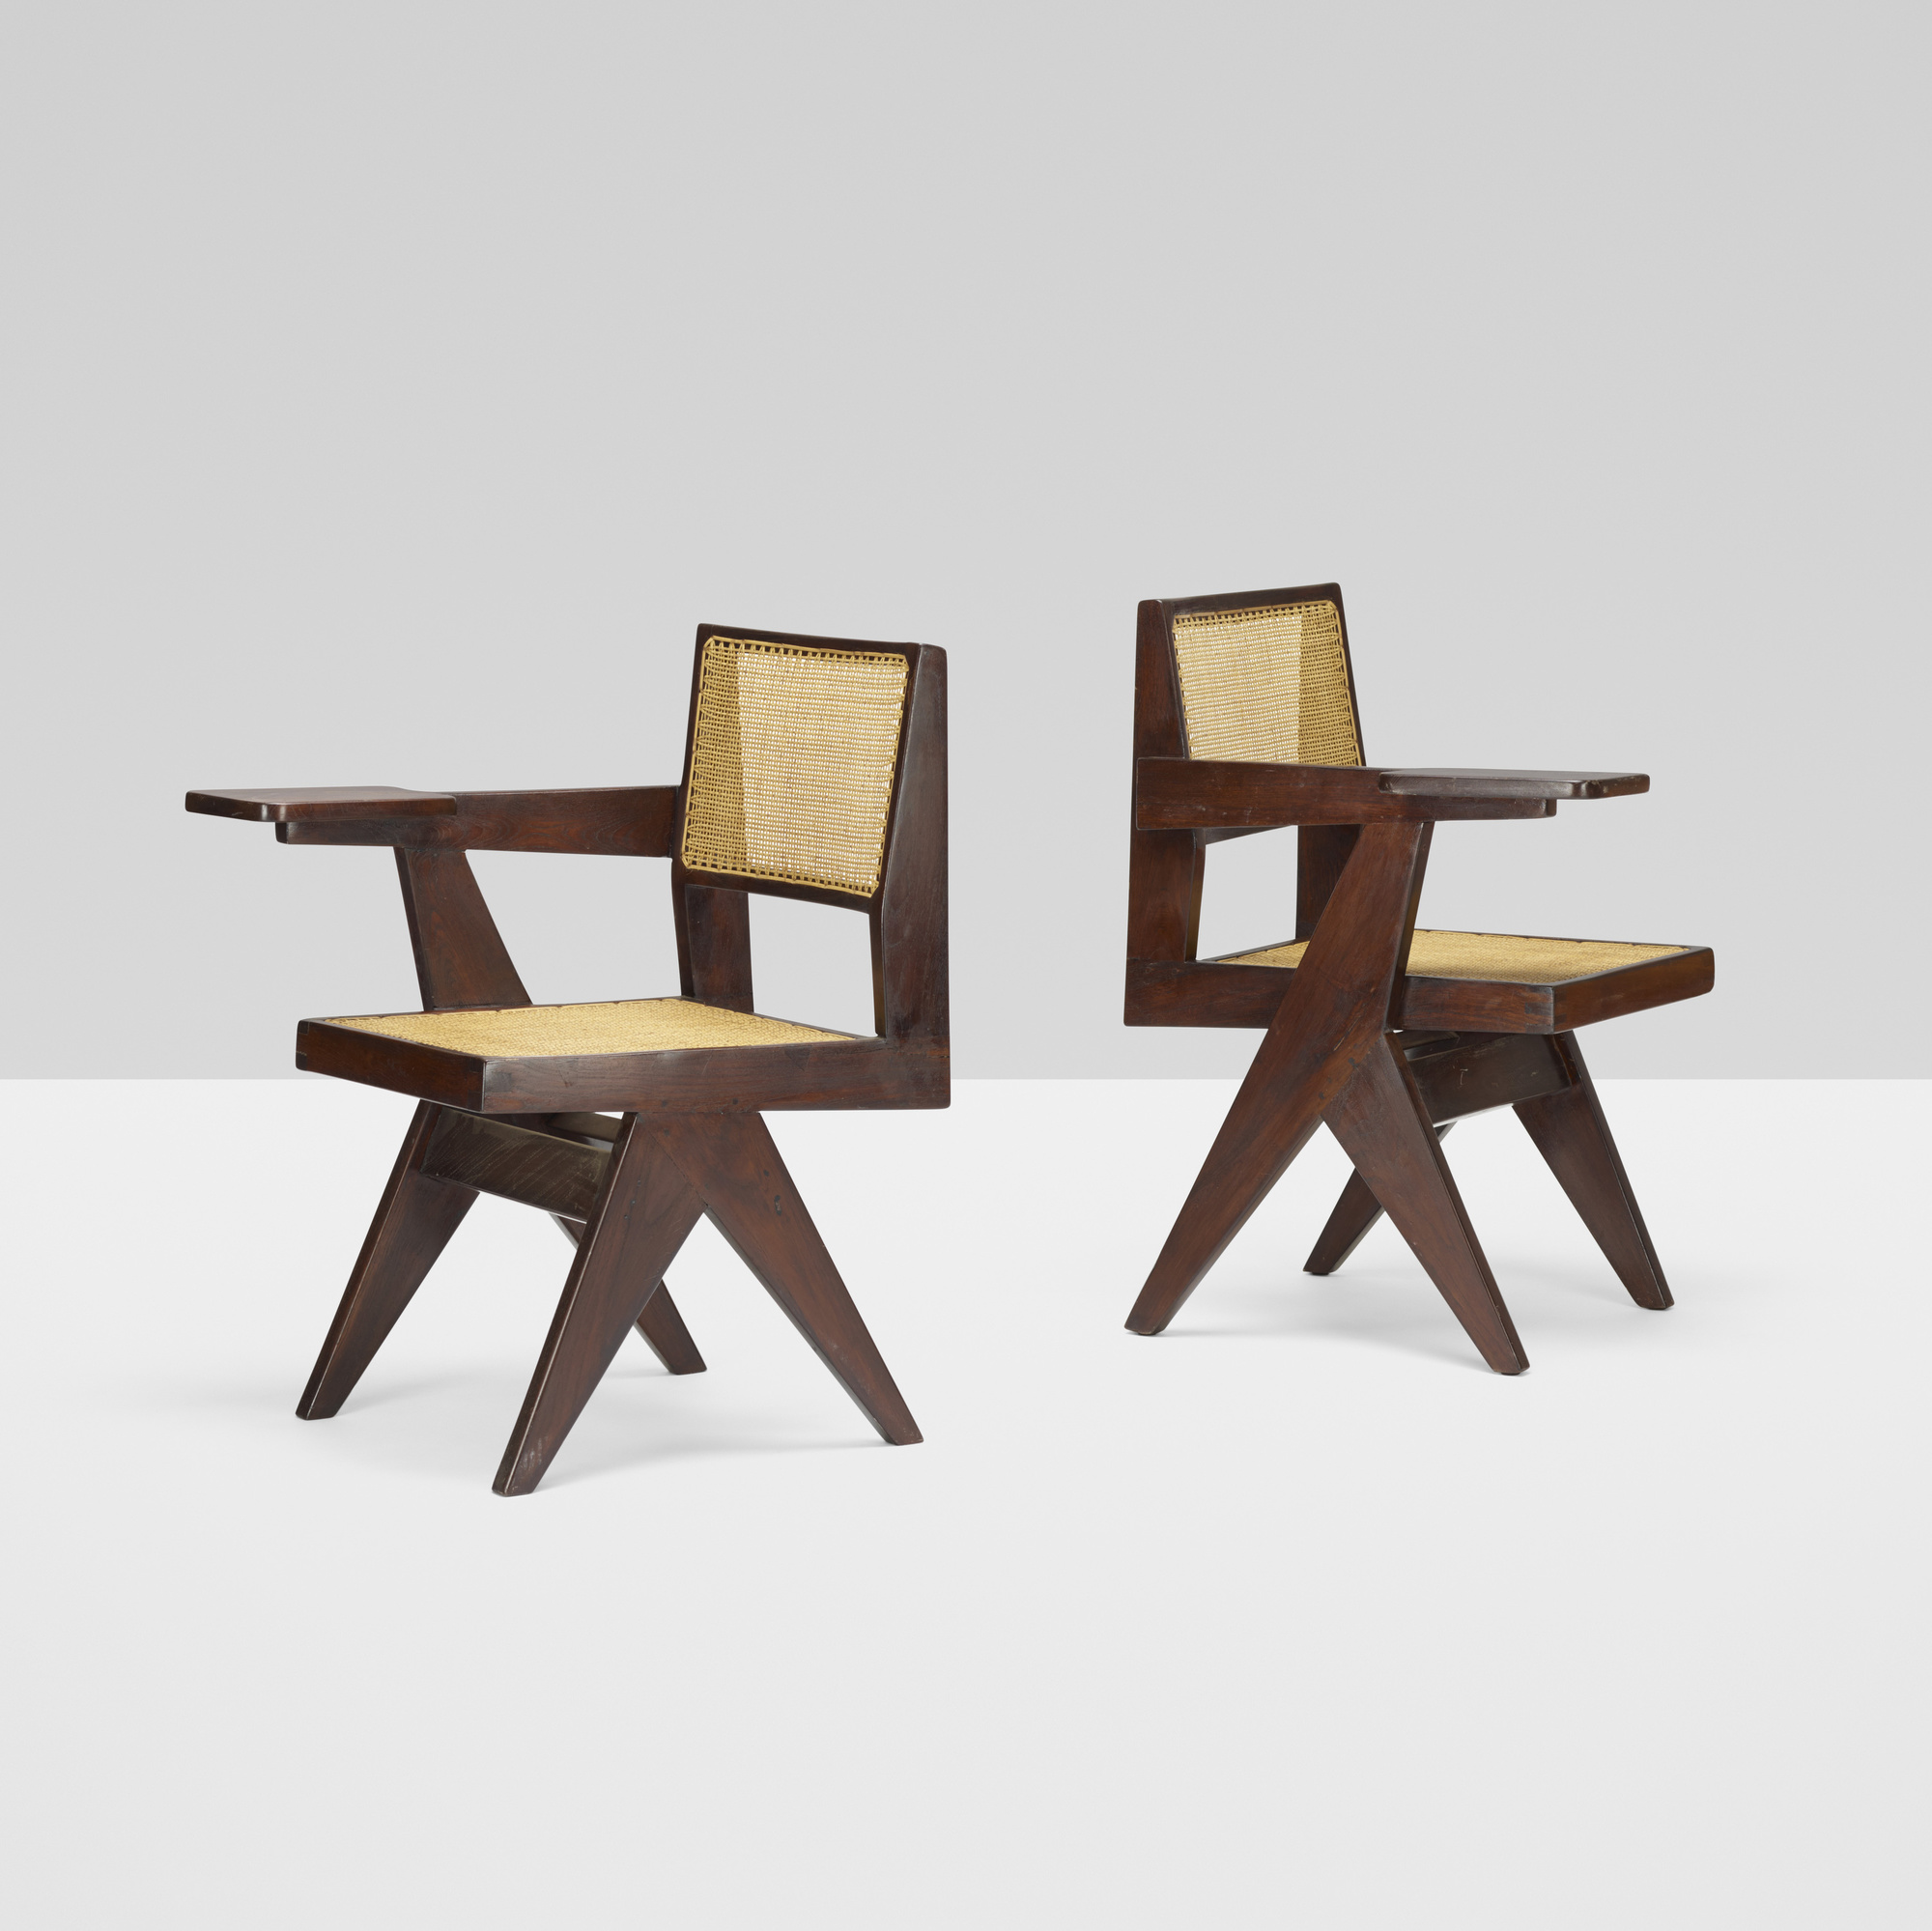 107: Pierre Jeanneret / pair of writing chairs from Chandigarh (1 of 3)